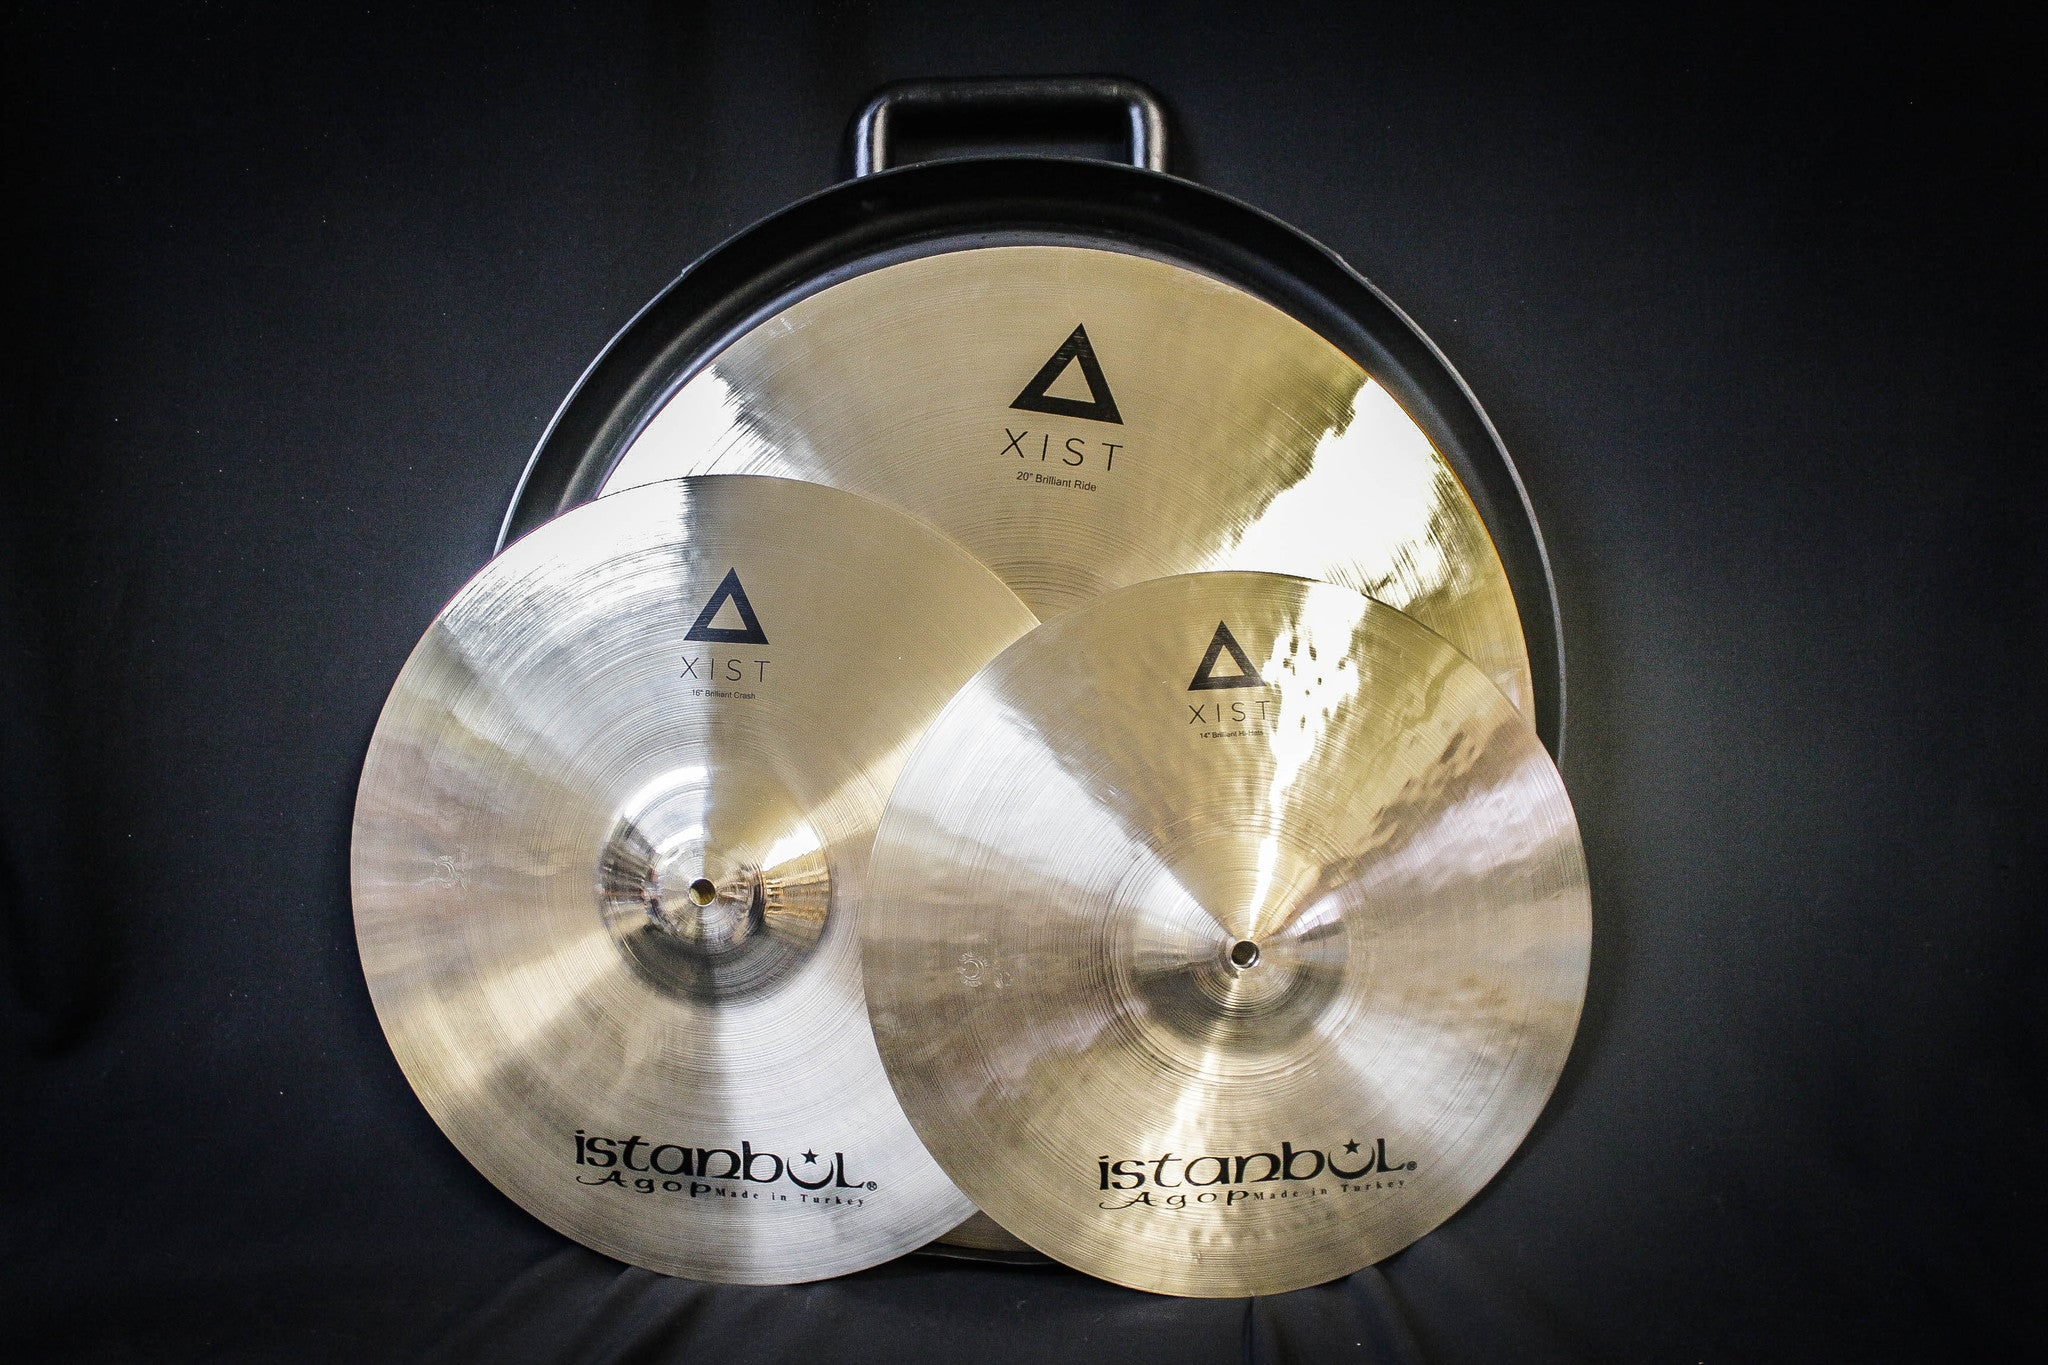 Istanbul Agop Xist Cymbal Pack (Brilliant)